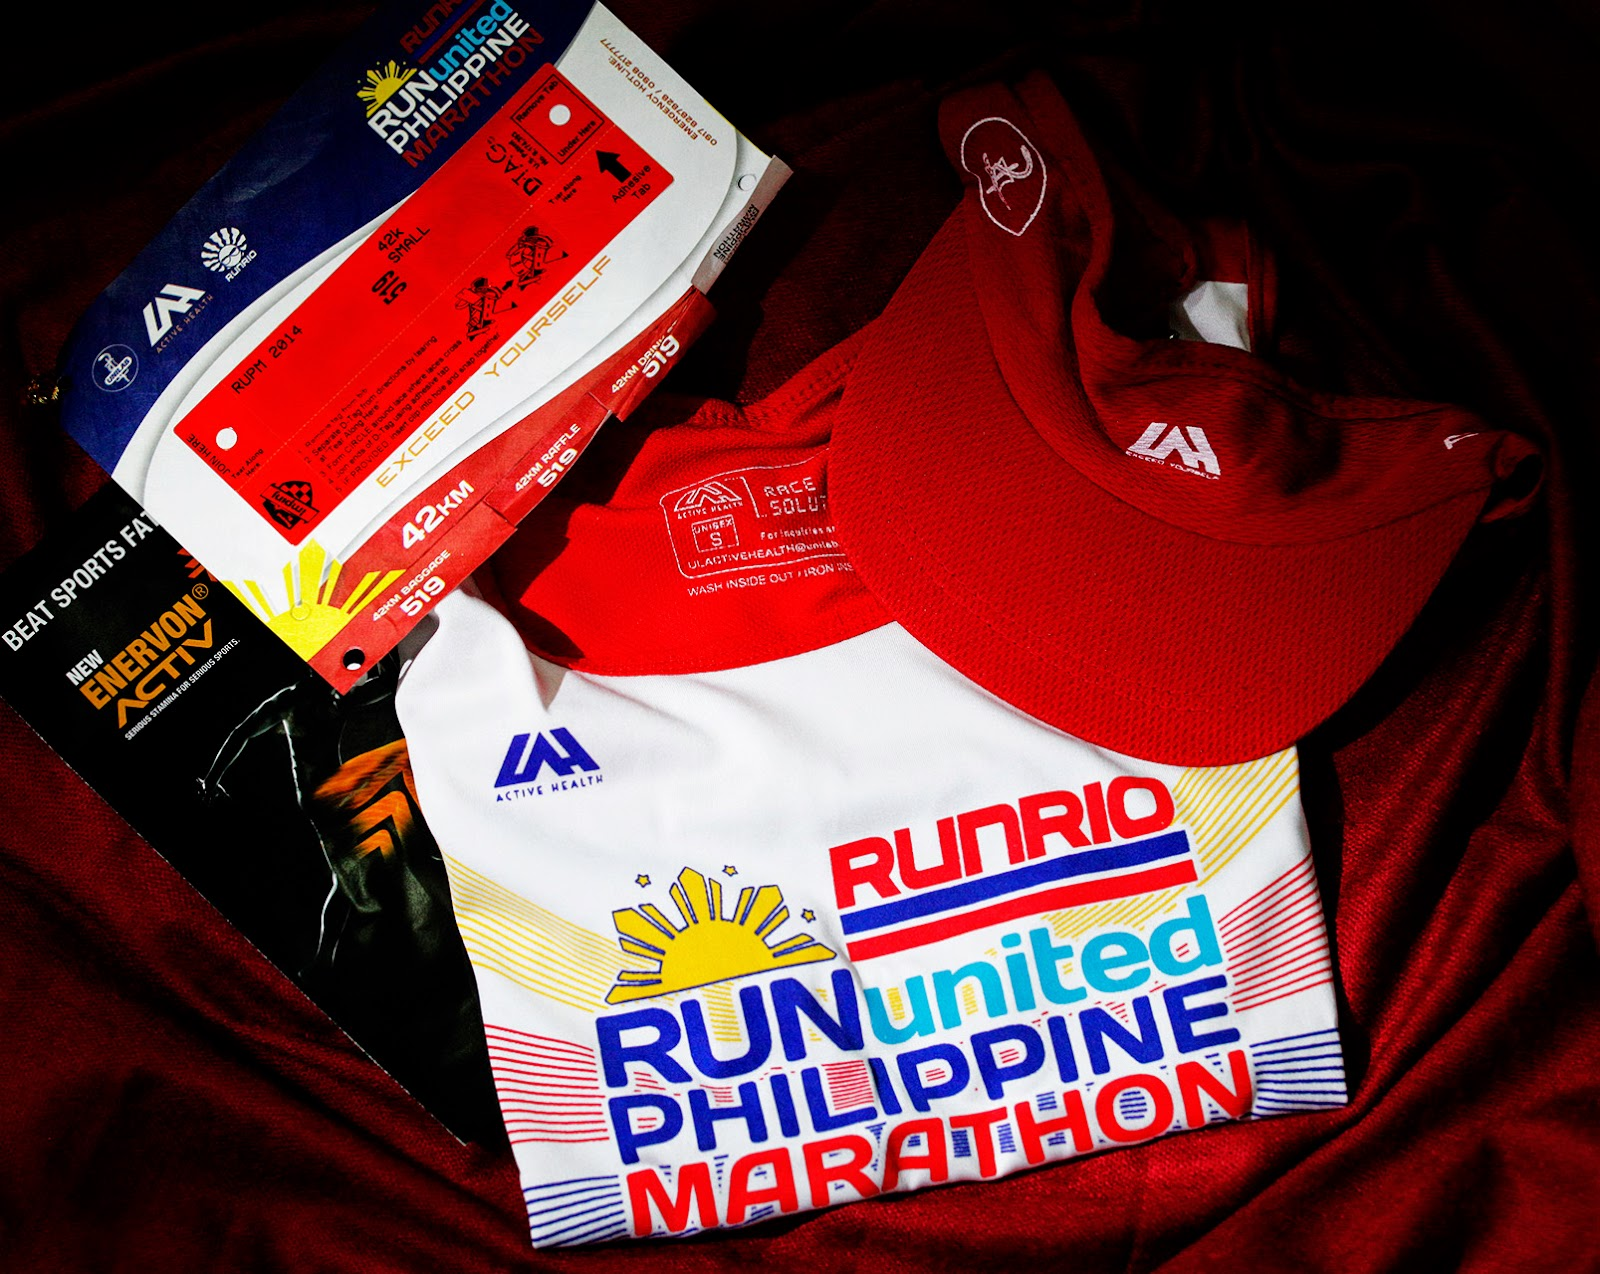 Run United Philippine Marathon 2014 Race Kit